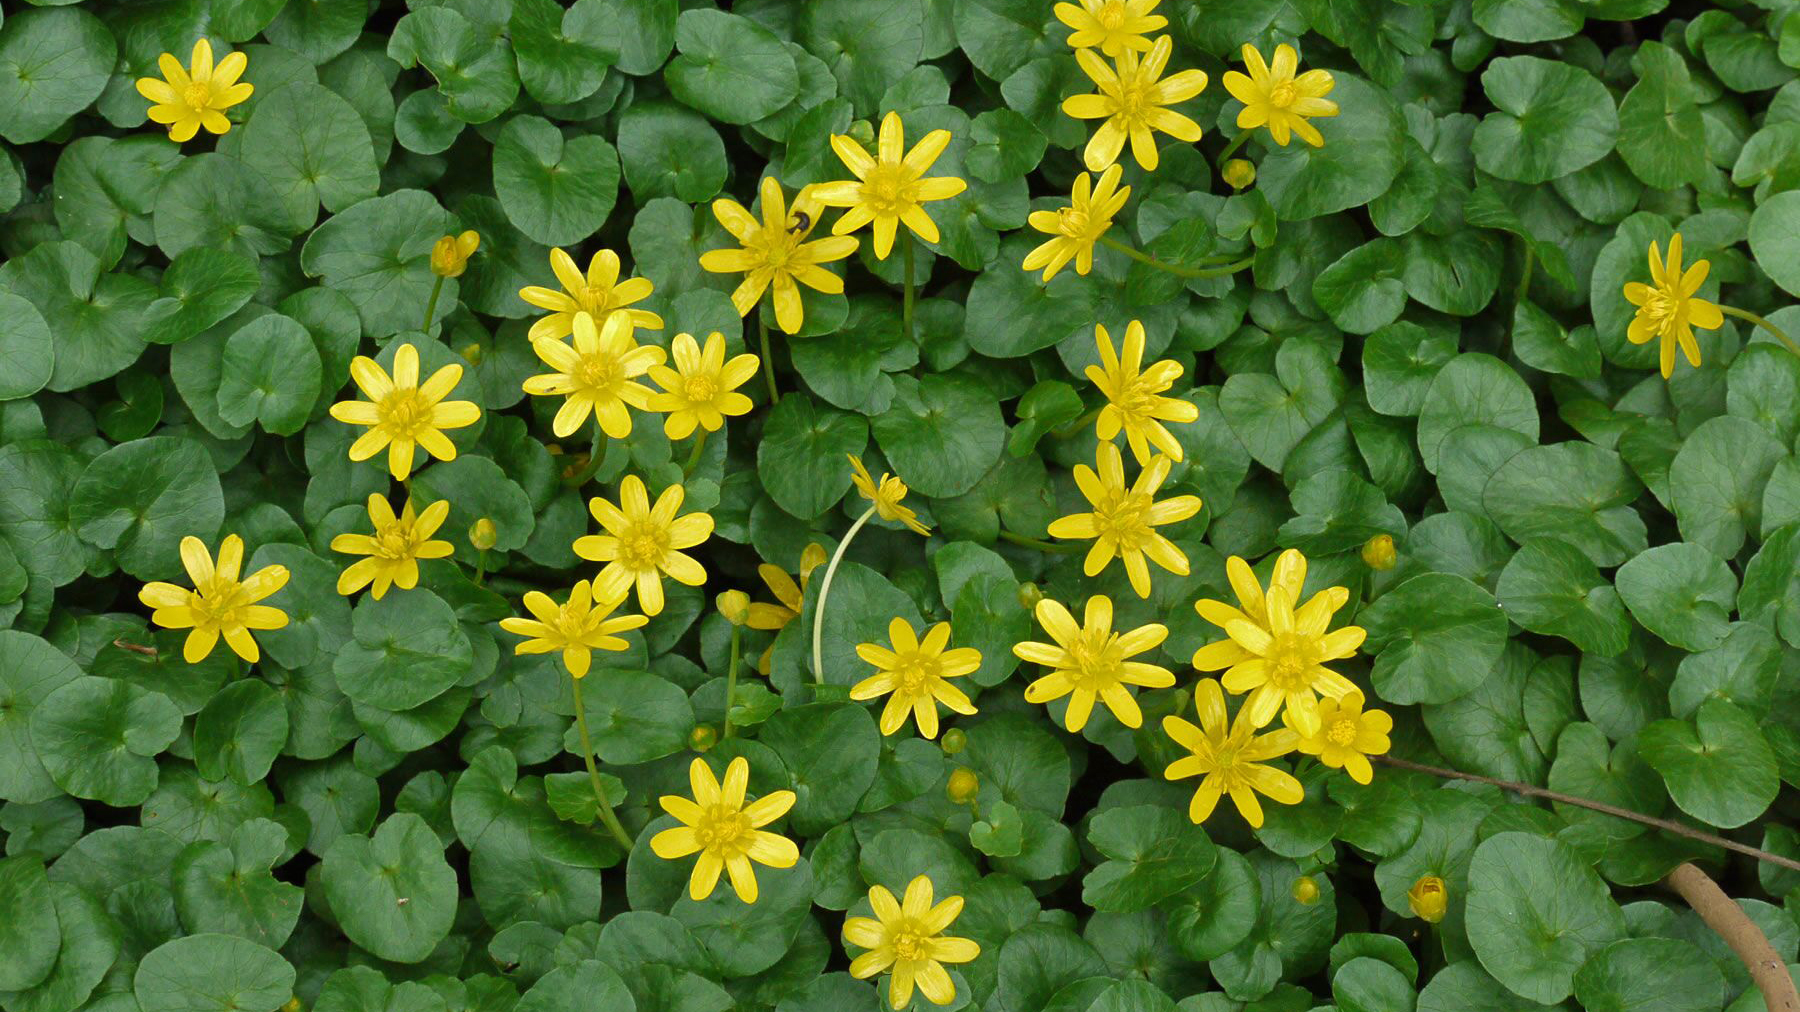 Fig Buttercup 1 WEB CROP_1551825157766.jpg.jpg